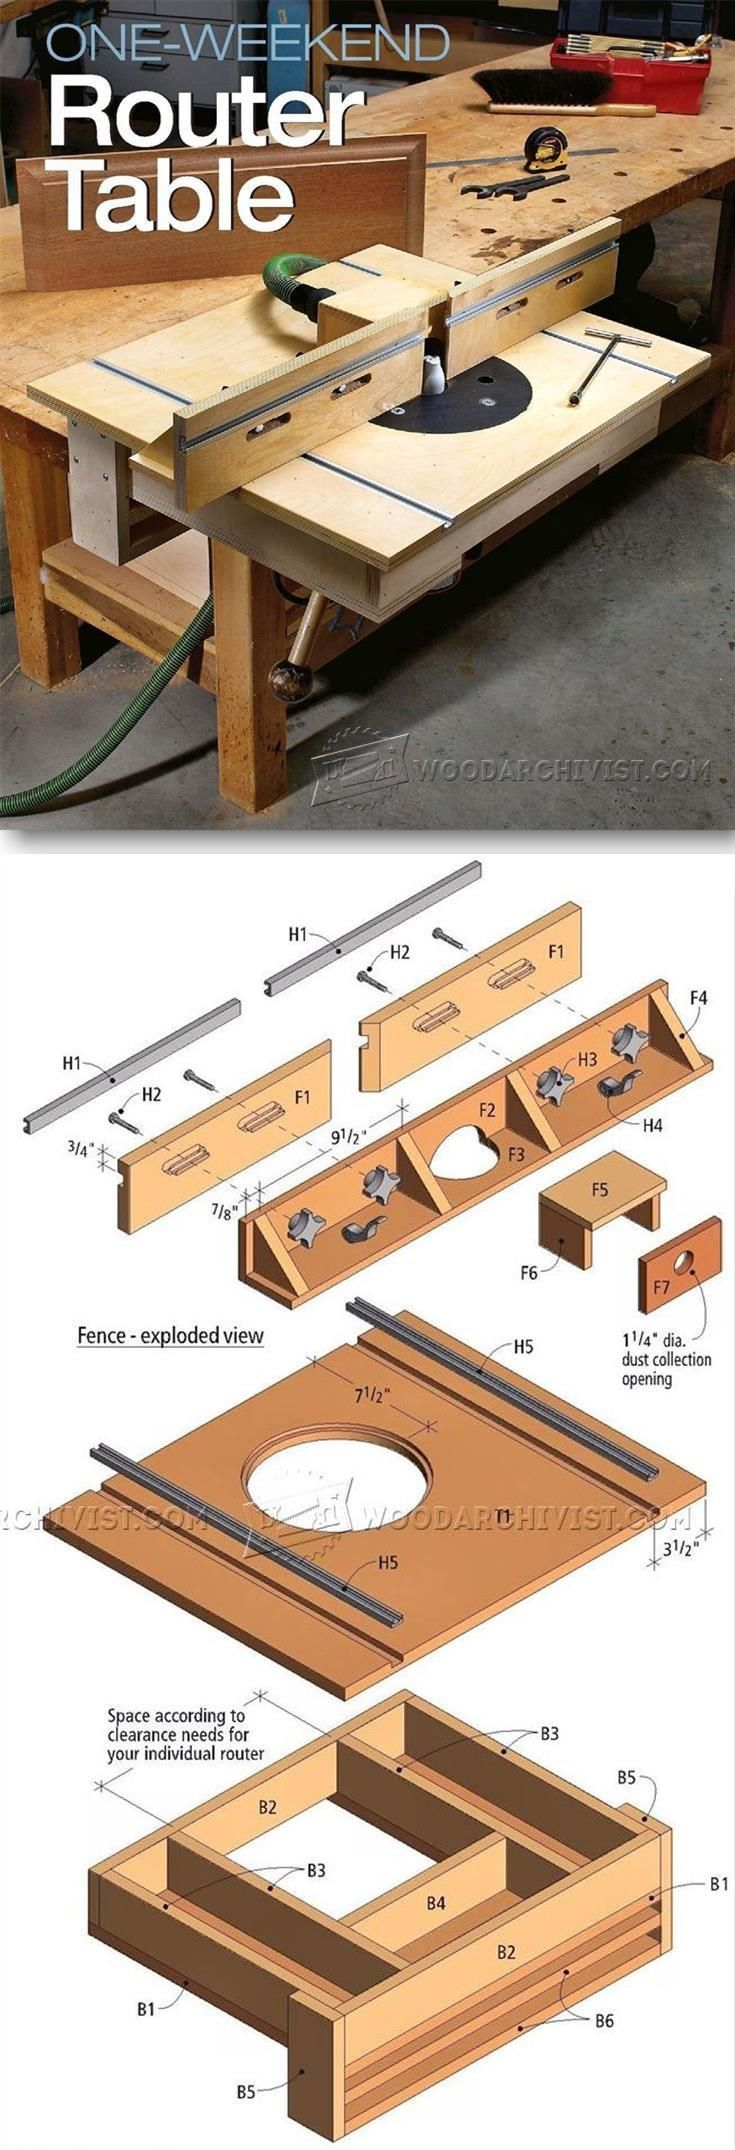 Bench mounted router table plans router tips jigs and fixtures bench mounted router table plans router tips jigs and fixtures http greentooth Image collections